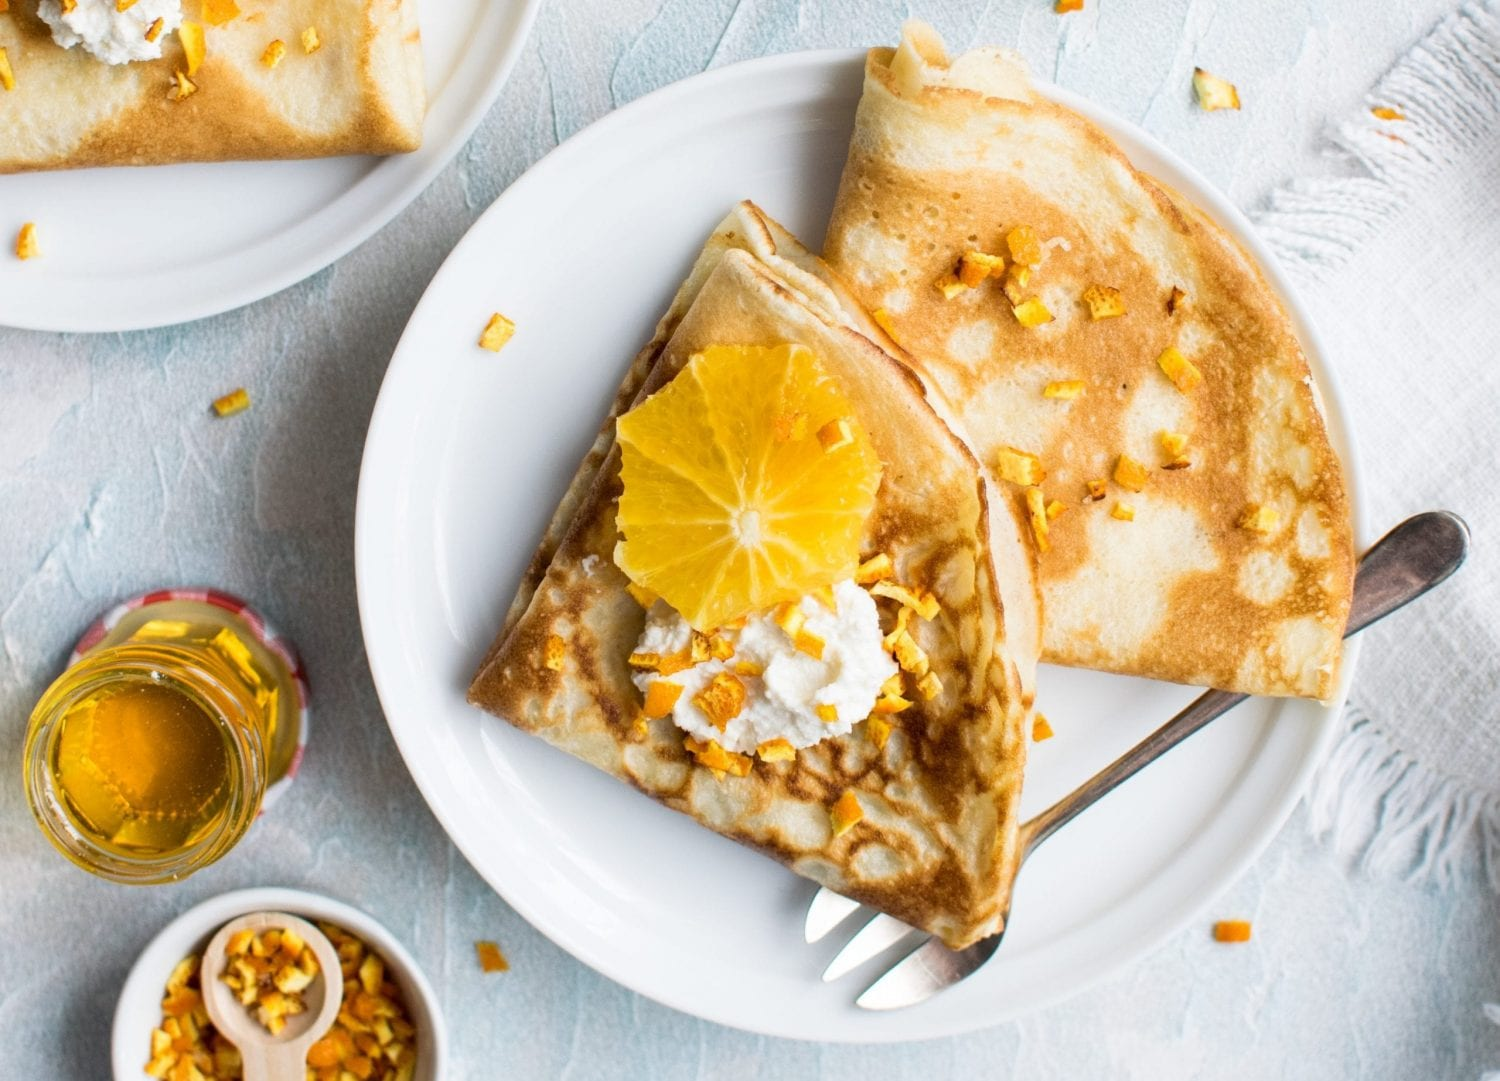 weed crepes that are golden brown with oranges on them.